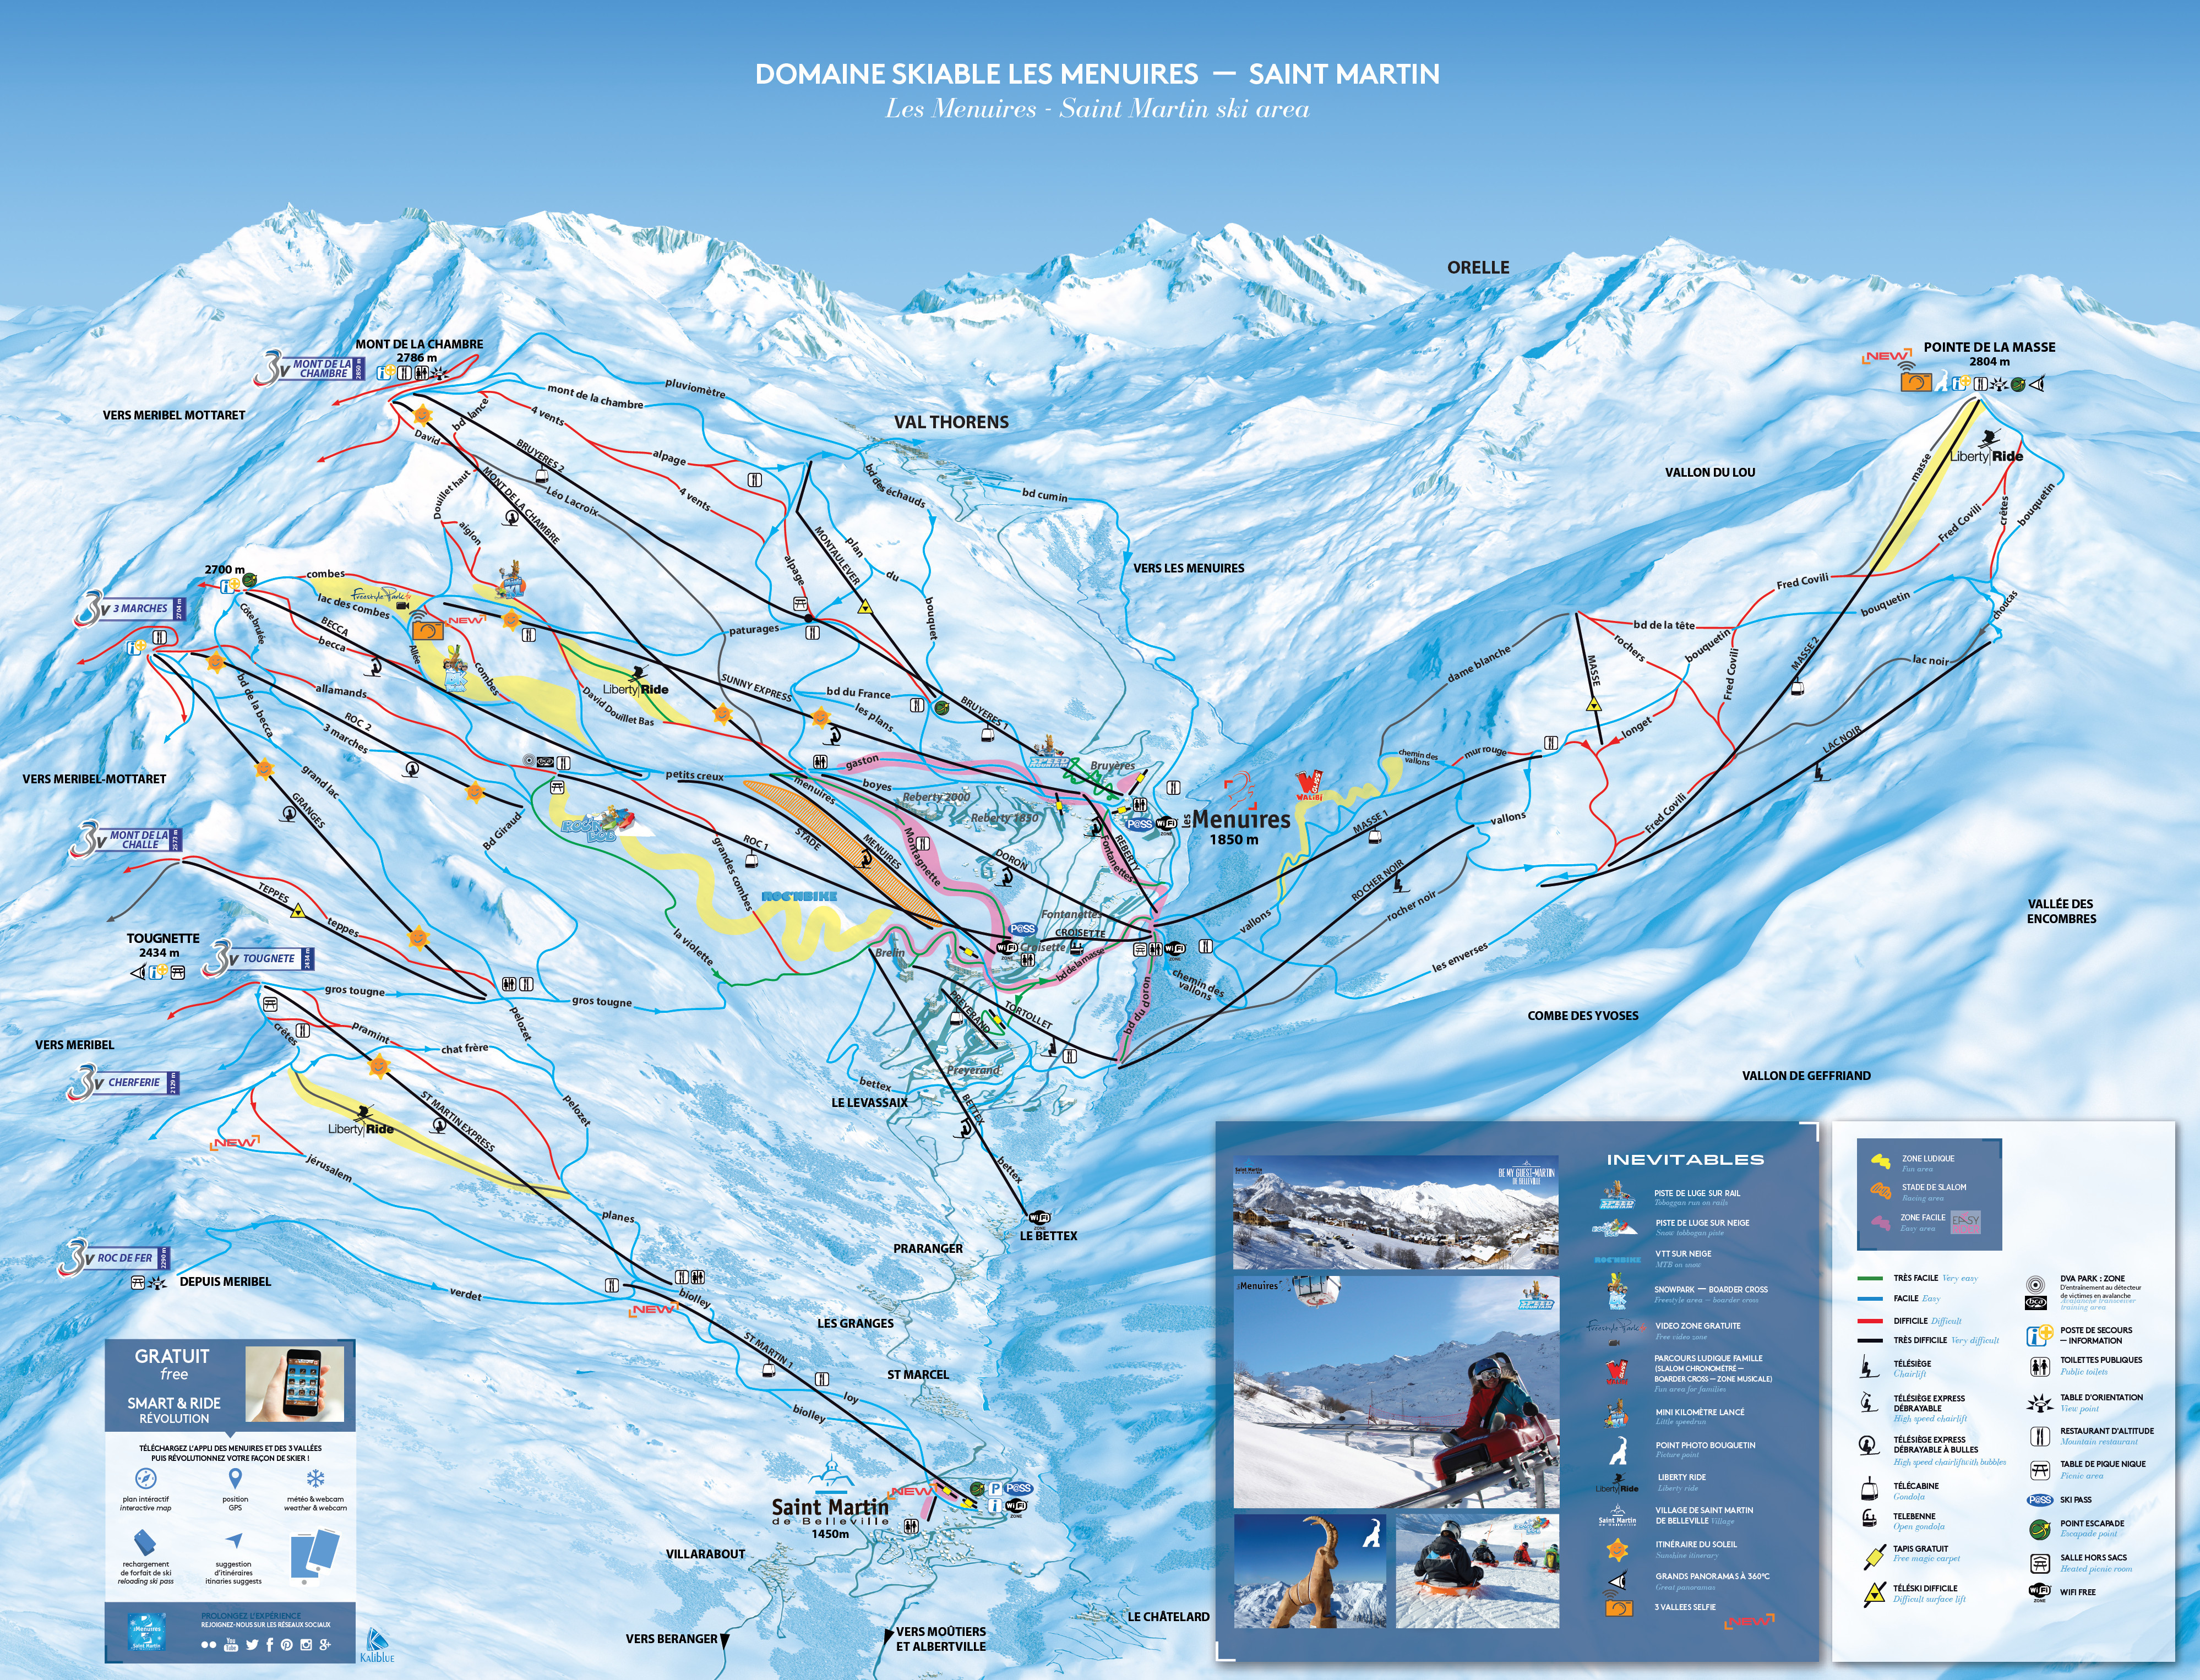 Les Menuires Piste Map Plan of ski slopes and lifts OnTheSnow